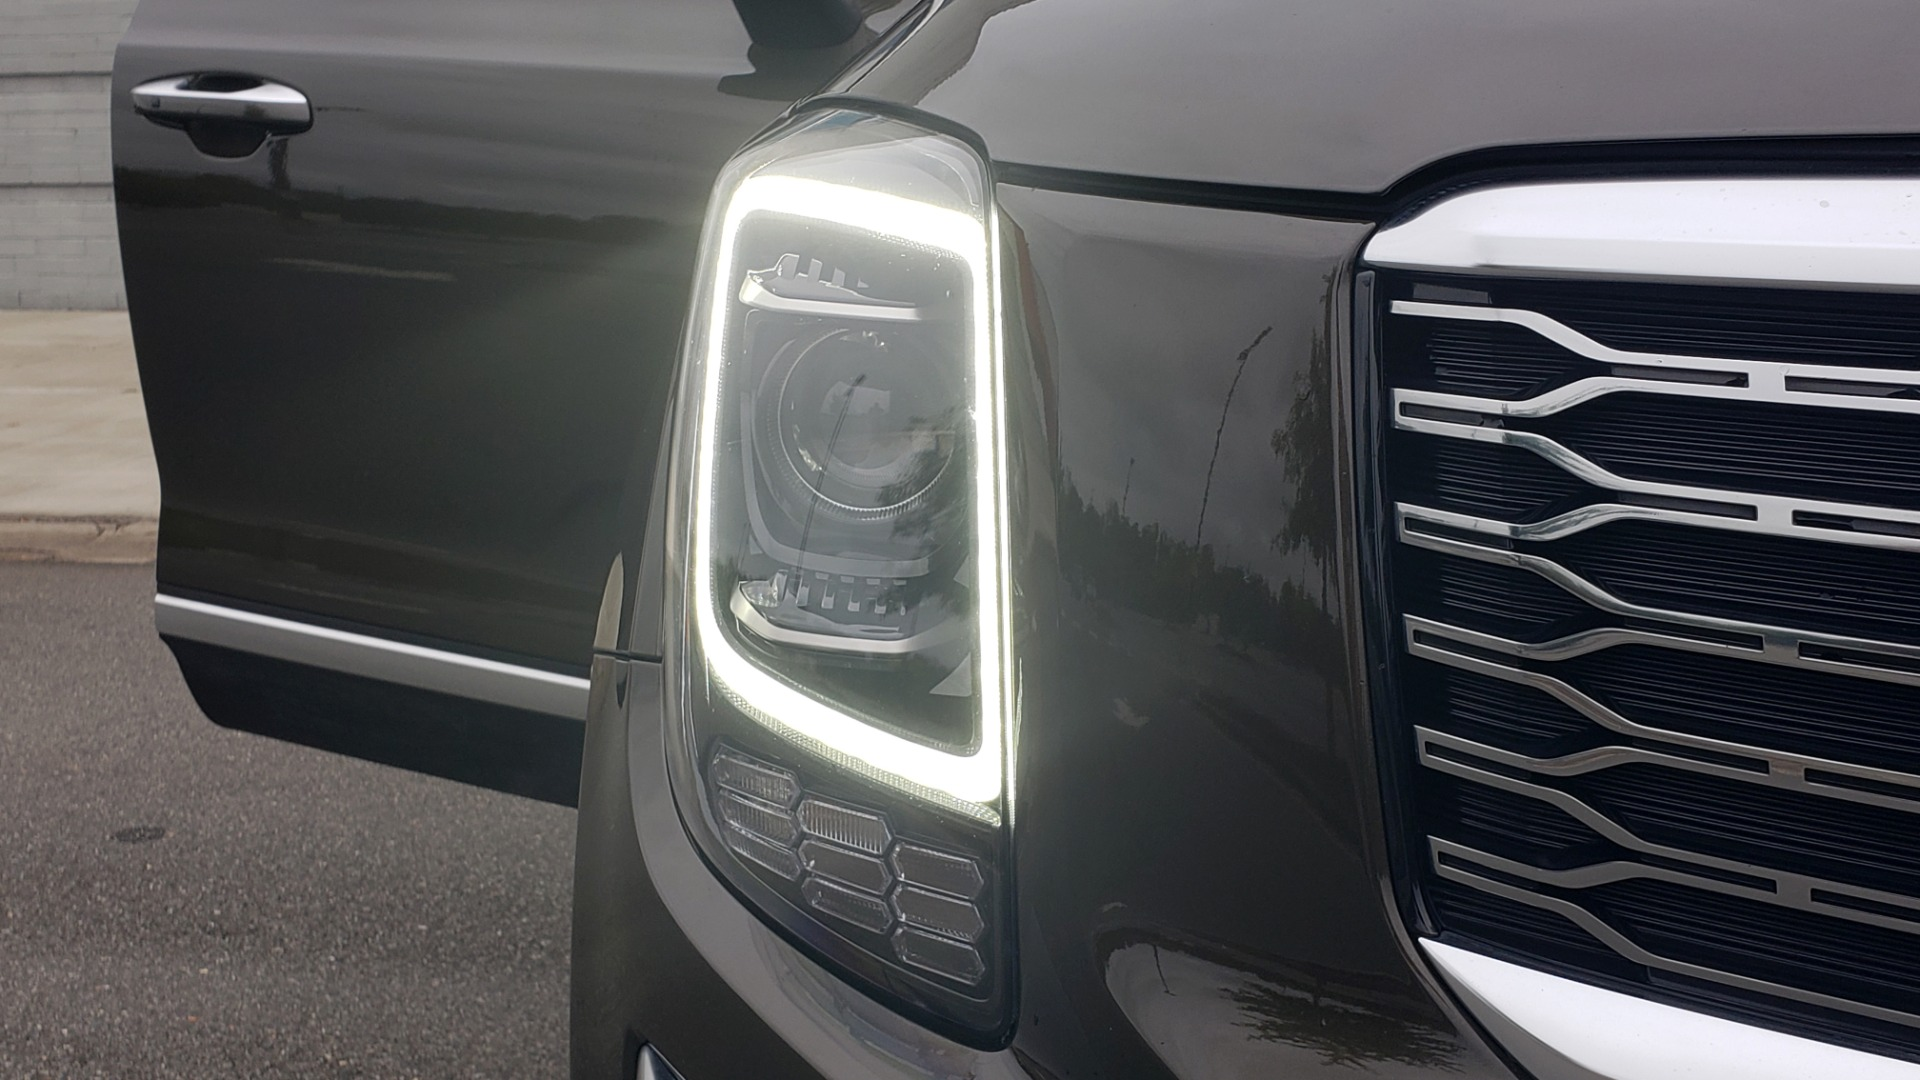 Used 2020 Kia TELLURIDE S 3.8L / FWD / 8-SPD AUTO / SUNROOF / REARVIEW / 20INCH WHEELS for sale $41,595 at Formula Imports in Charlotte NC 28227 25